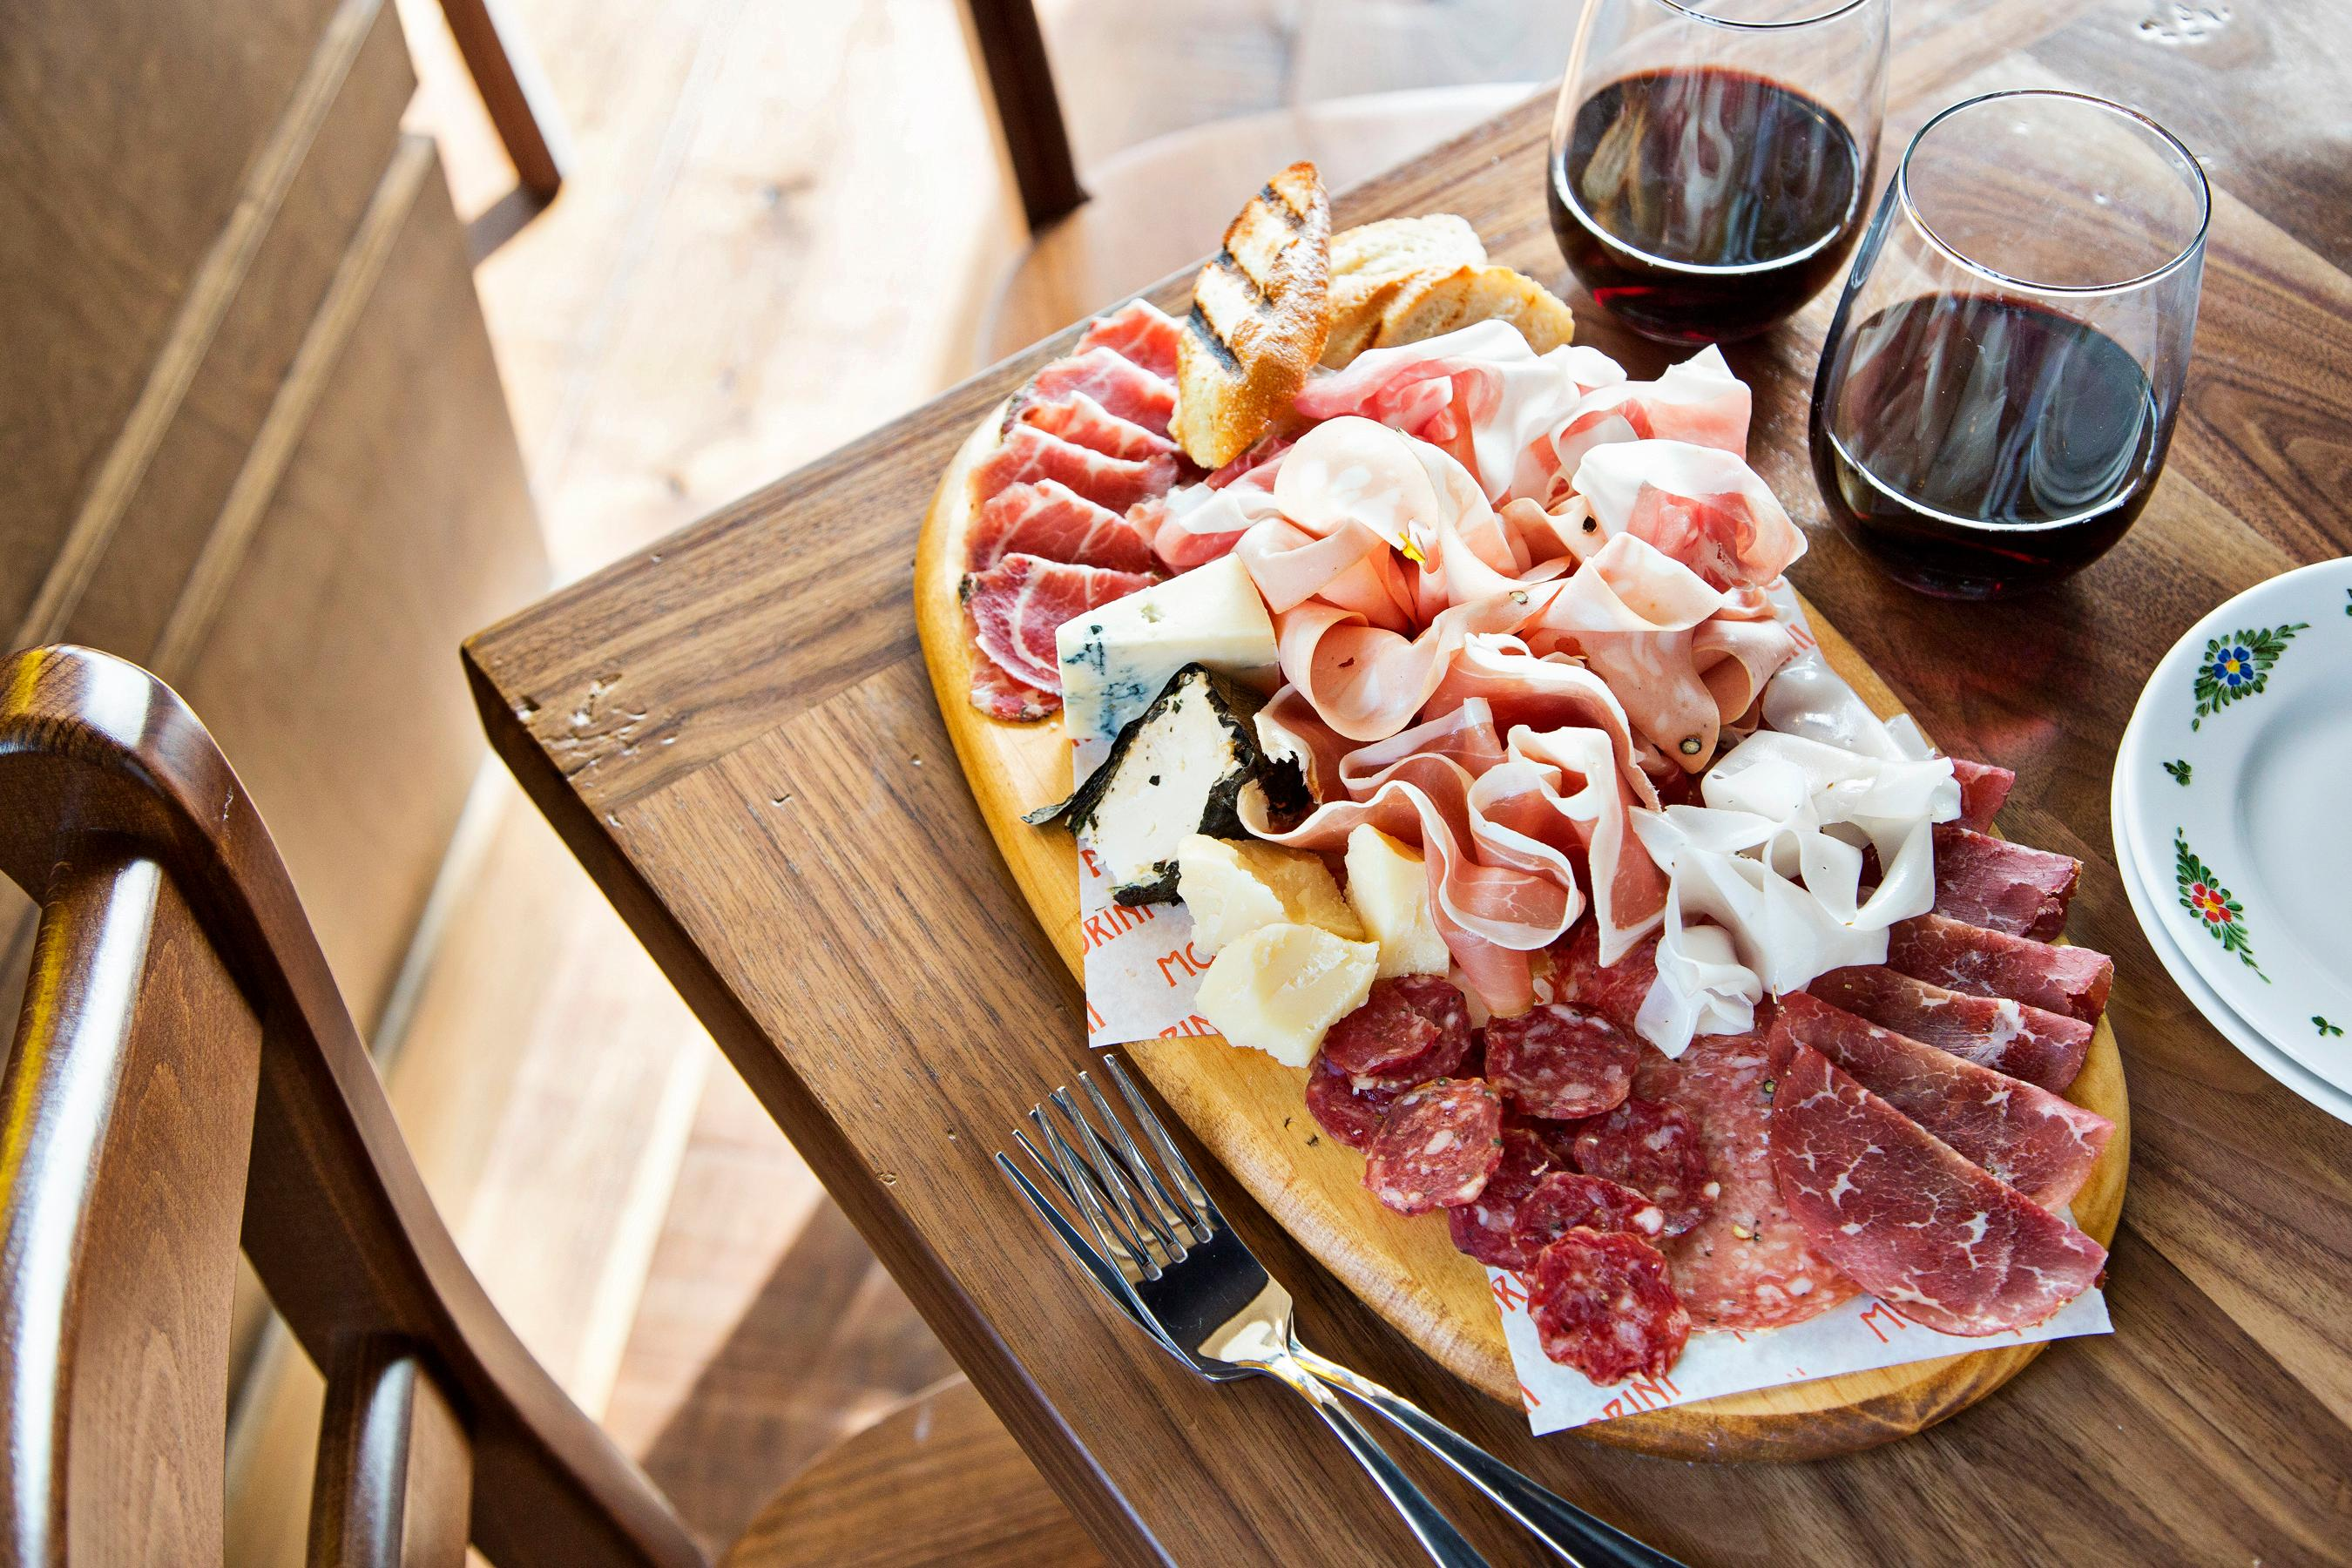 Cheese and charcuterie board at Osteria Morini (Scott Suchman)